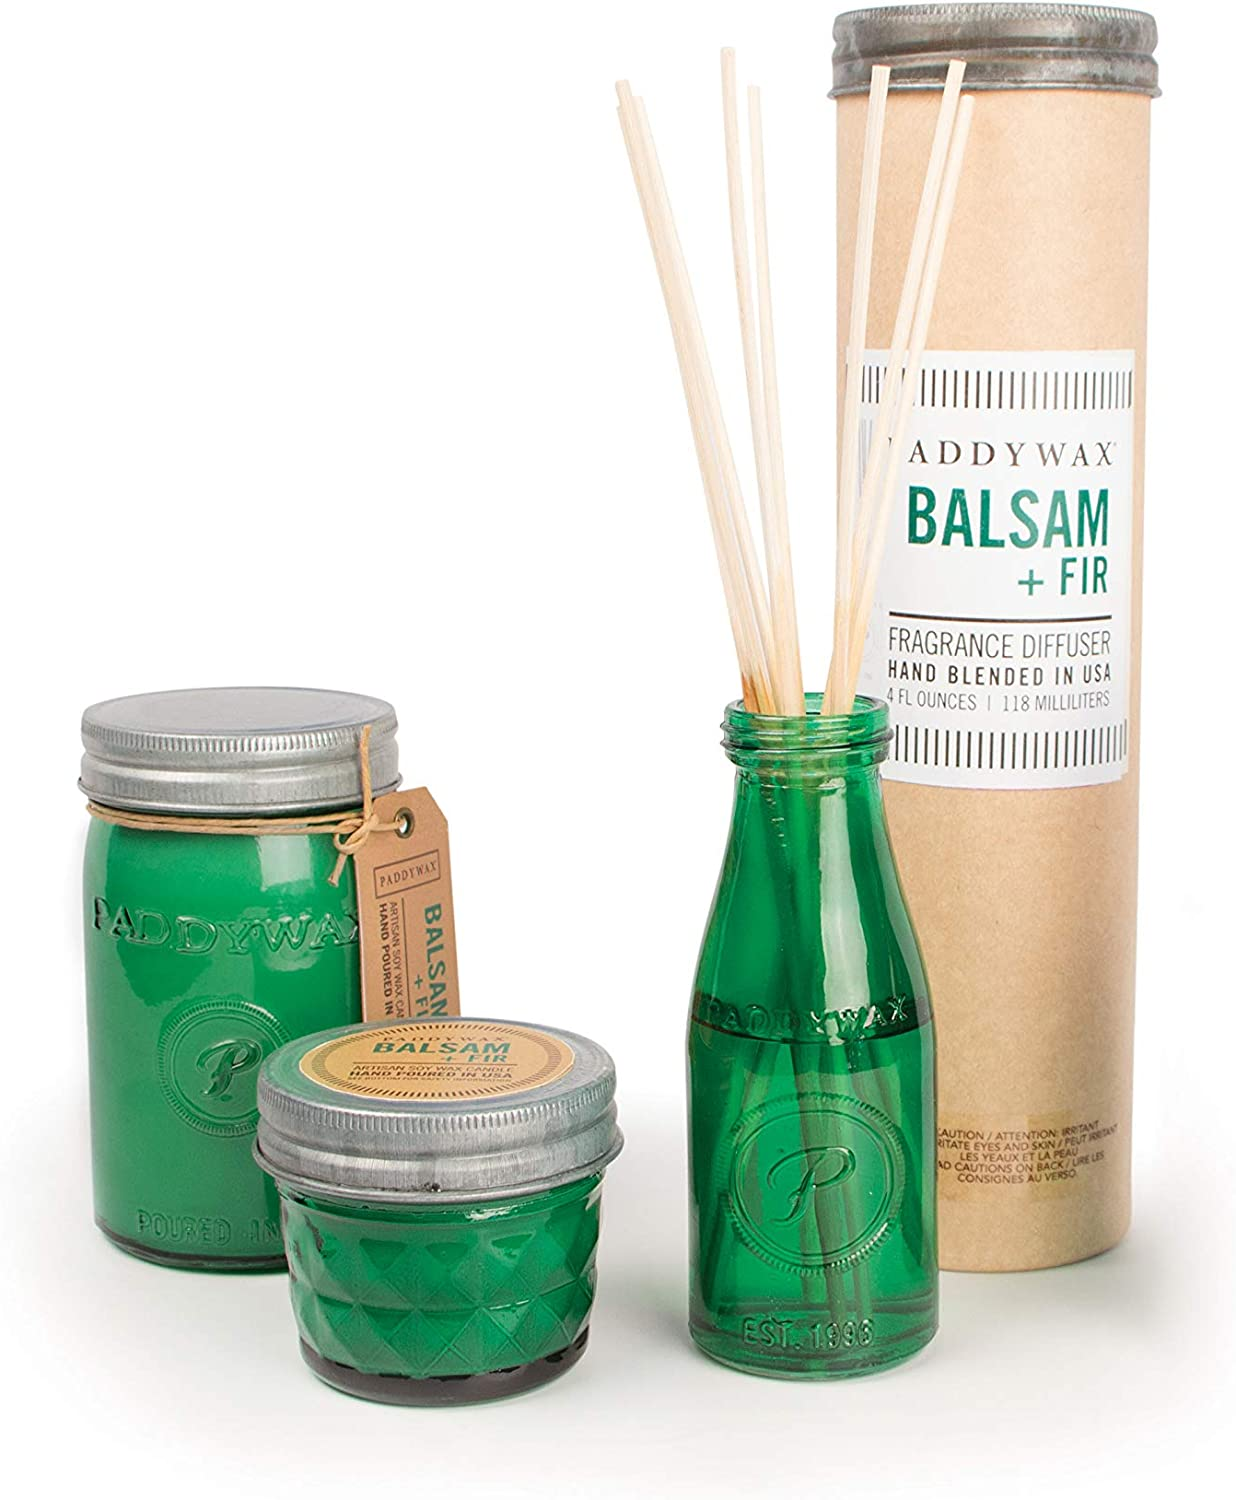 Balsam Small- 3 Ounce Fir RJ211Z Paddywax Candles Relish Collection Soy Wax Blend Candle in Glass Mason Jar